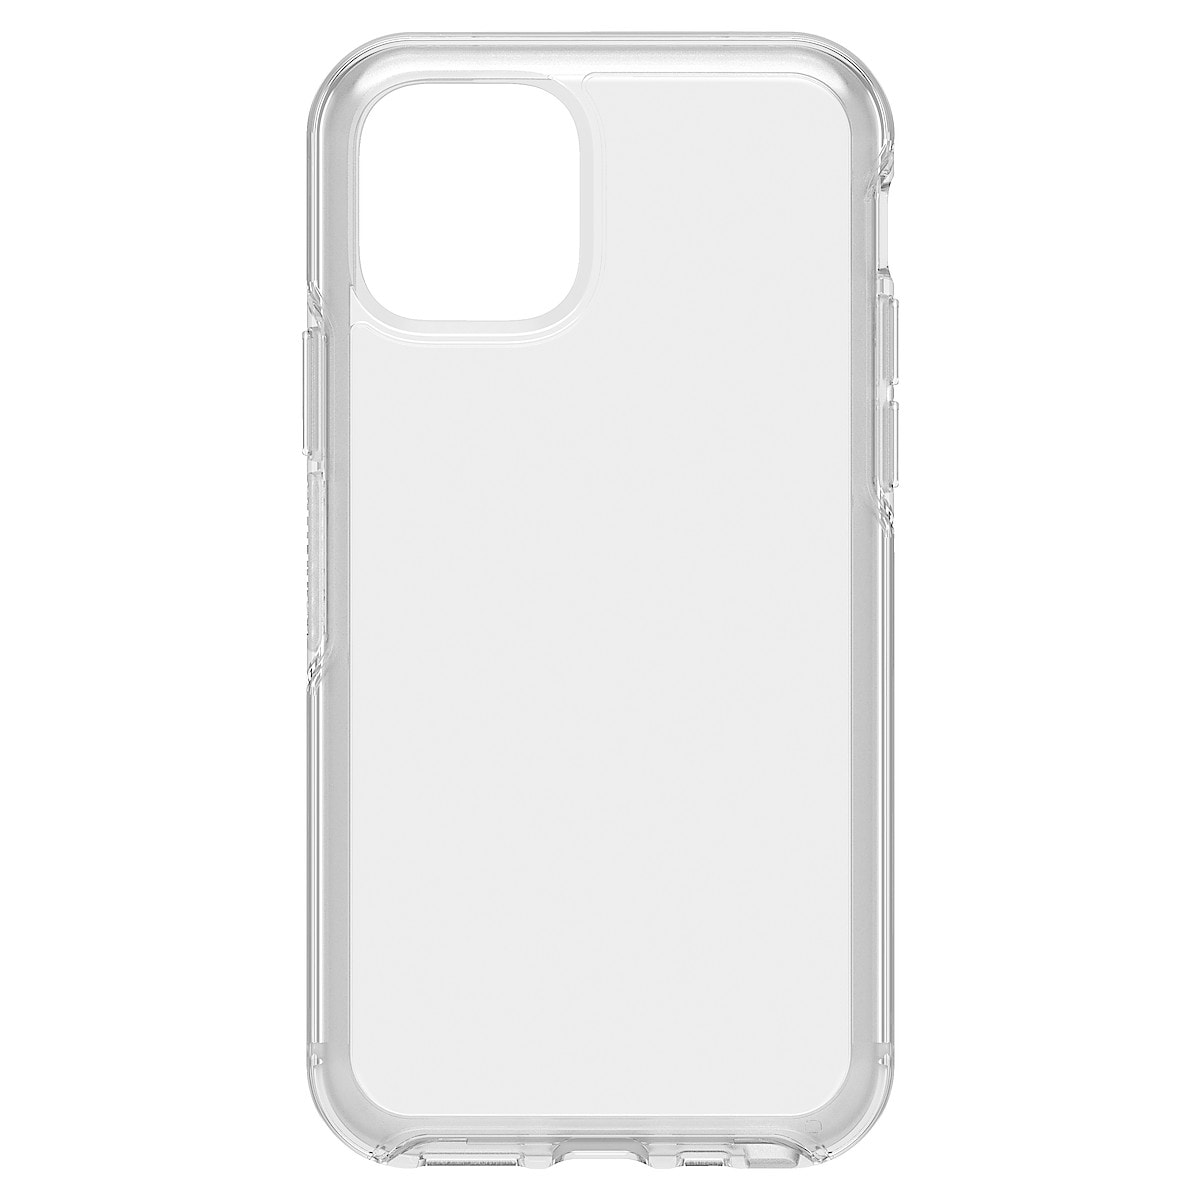 Otterbox Symmetry Clear für iPhone 11 Pro, Handyhülle